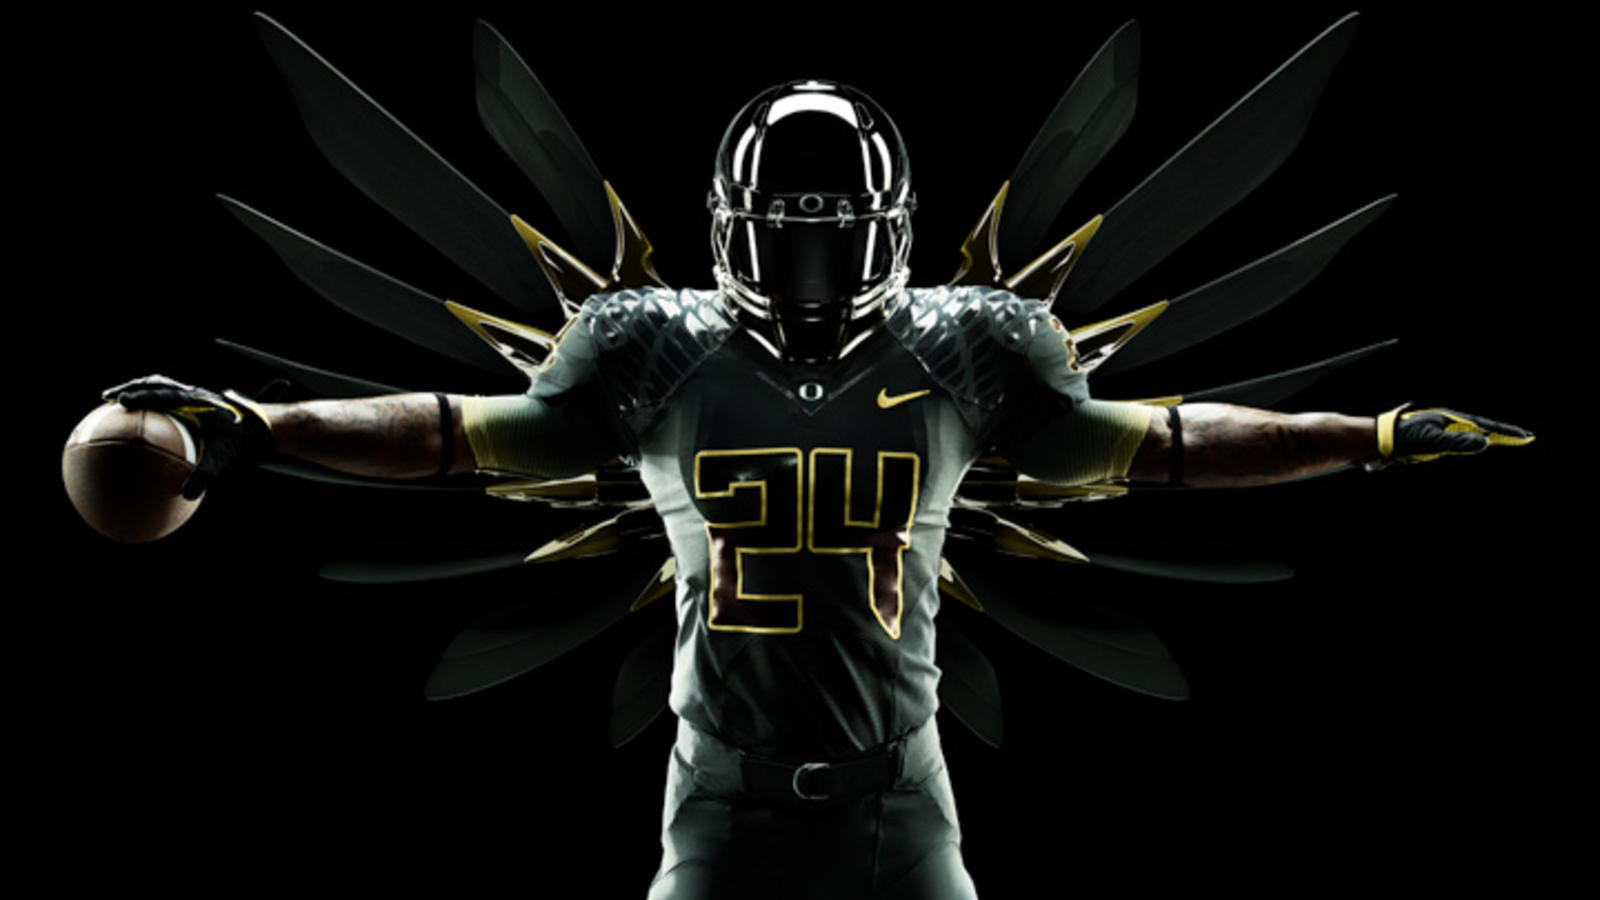 best service 7c74c 91b53 Nike unveils new integrated uniform system for Oregon Ducks ...